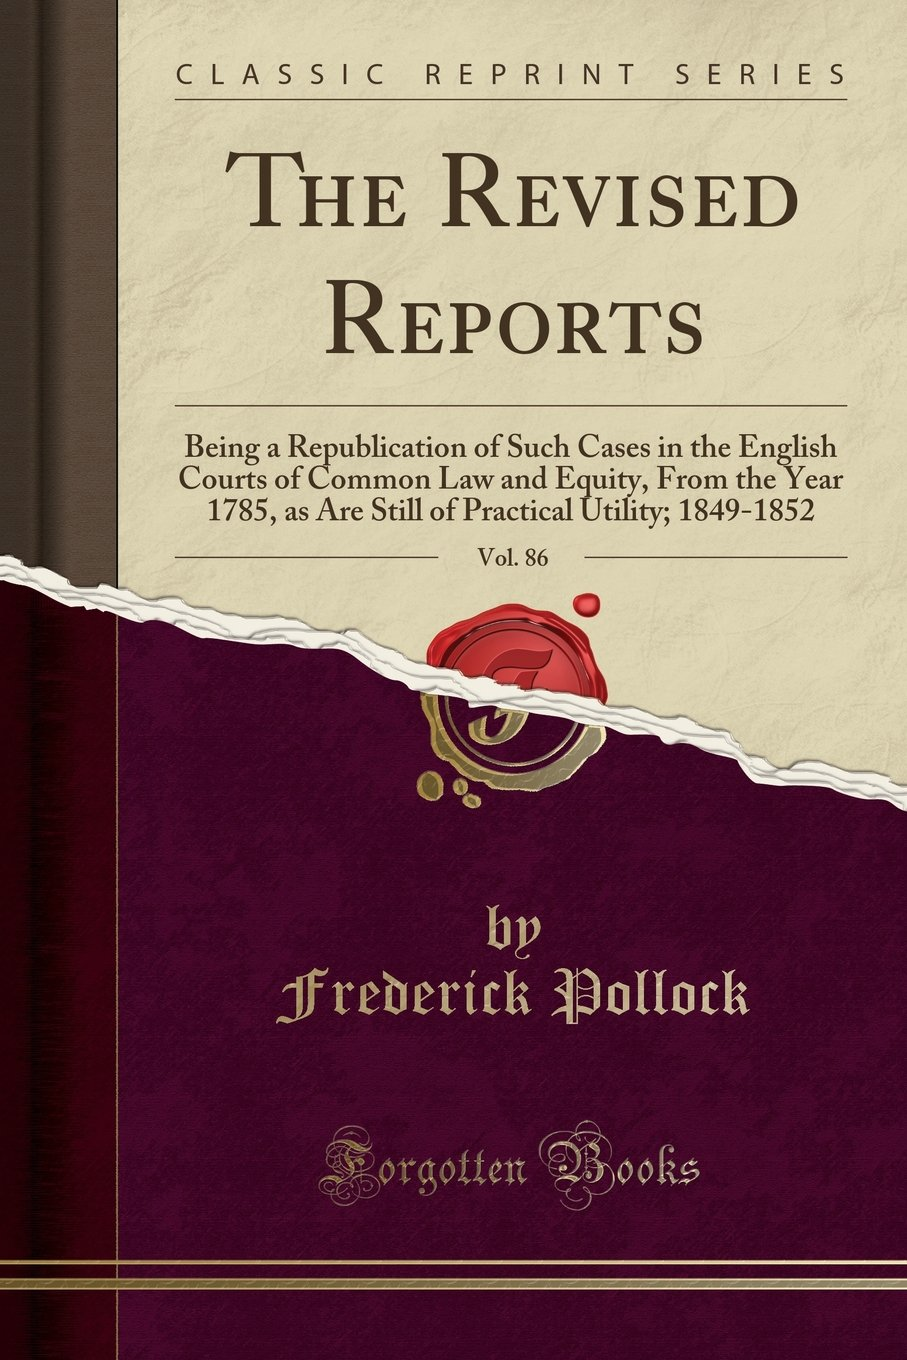 Download The Revised Reports, Vol. 86: Being a Republication of Such Cases in the English Courts of Common Law and Equity, From the Year 1785, as Are Still of Practical Utility; 1849-1852 (Classic Reprint) PDF